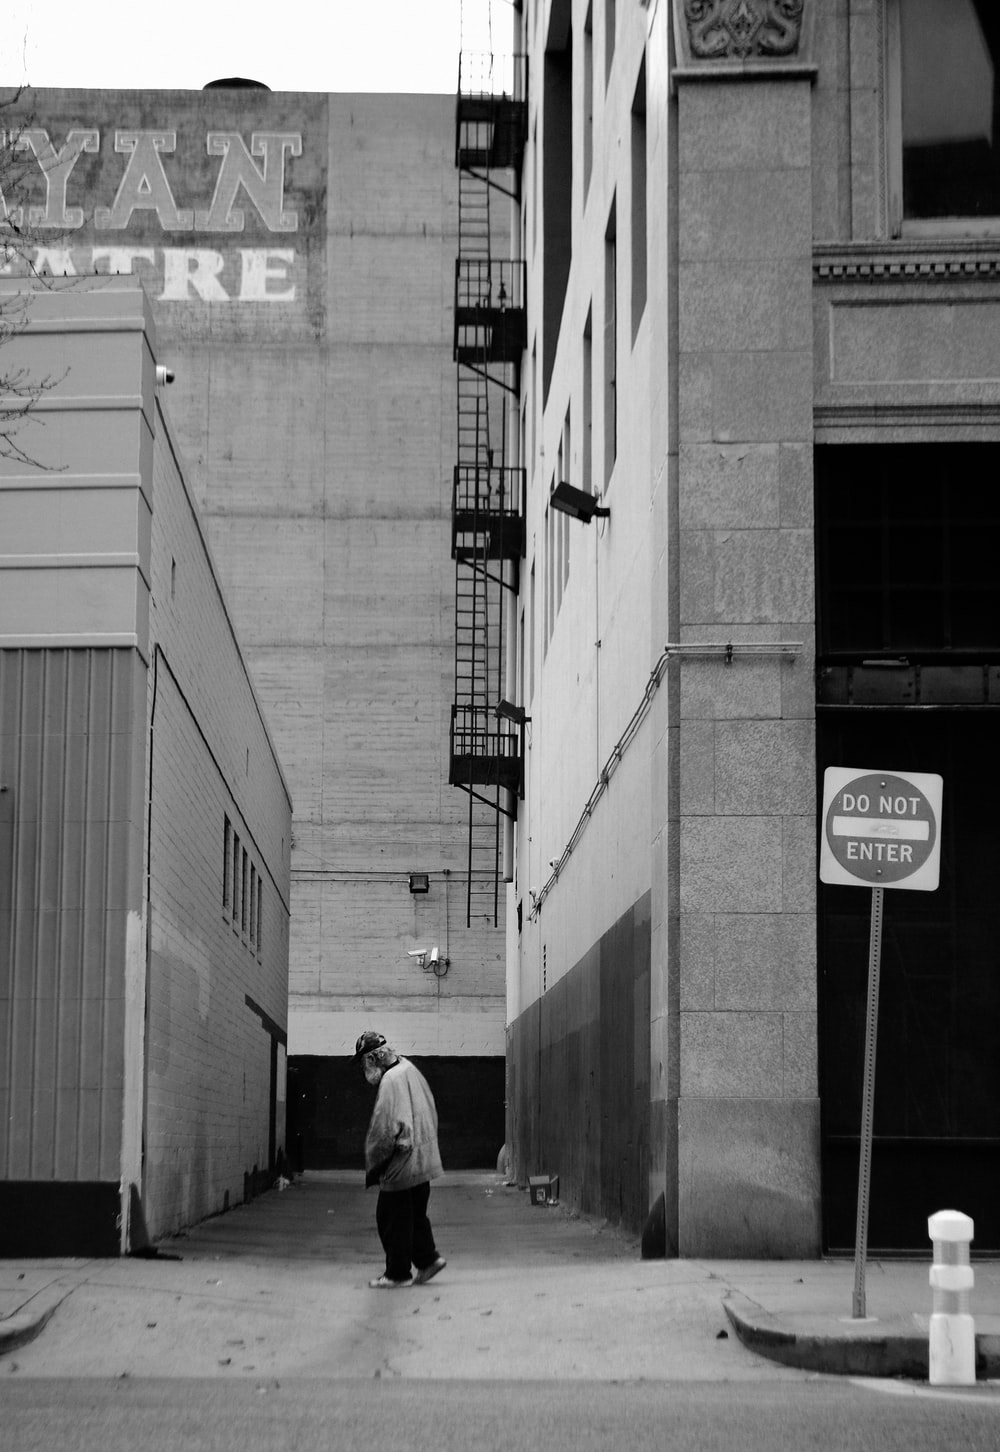 person walking on alley